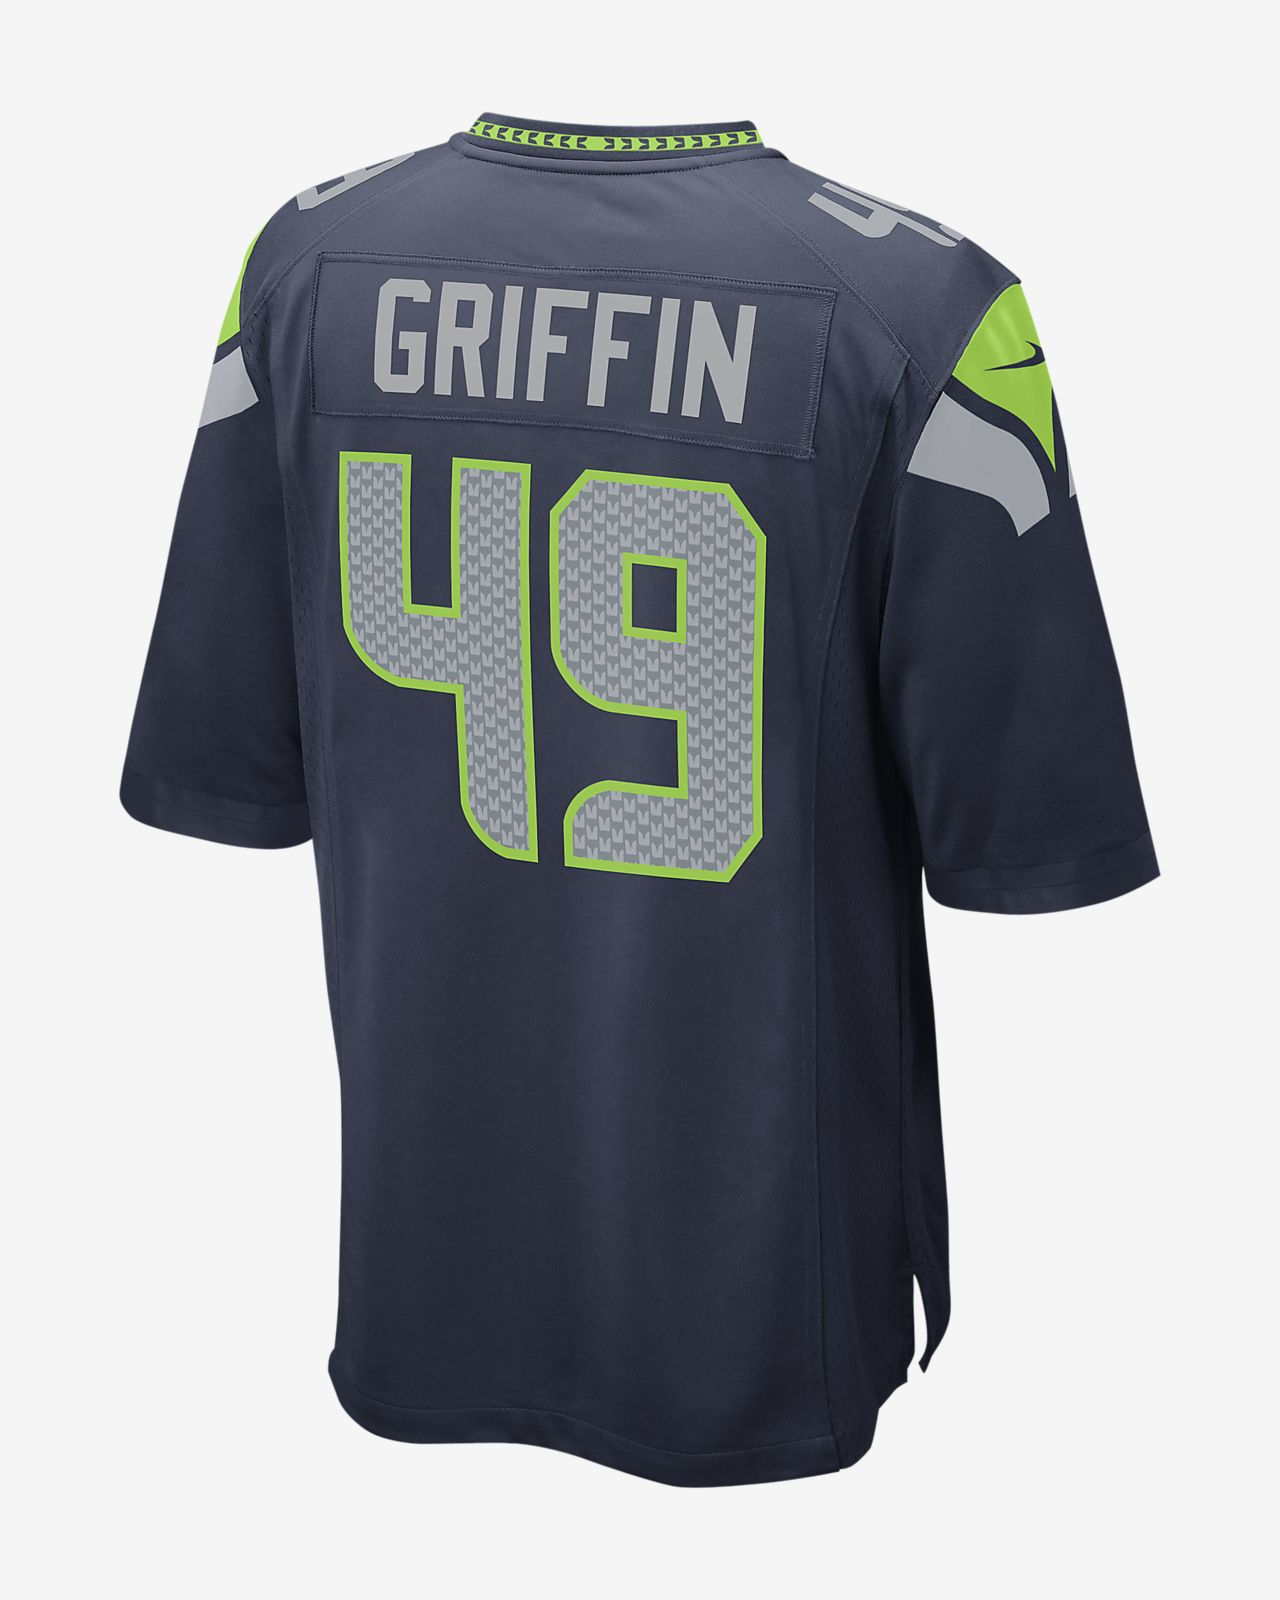 66b318b63a2 ... NFL Seattle Seahawks Game (Shaquem Griffin) Men's Football Jersey